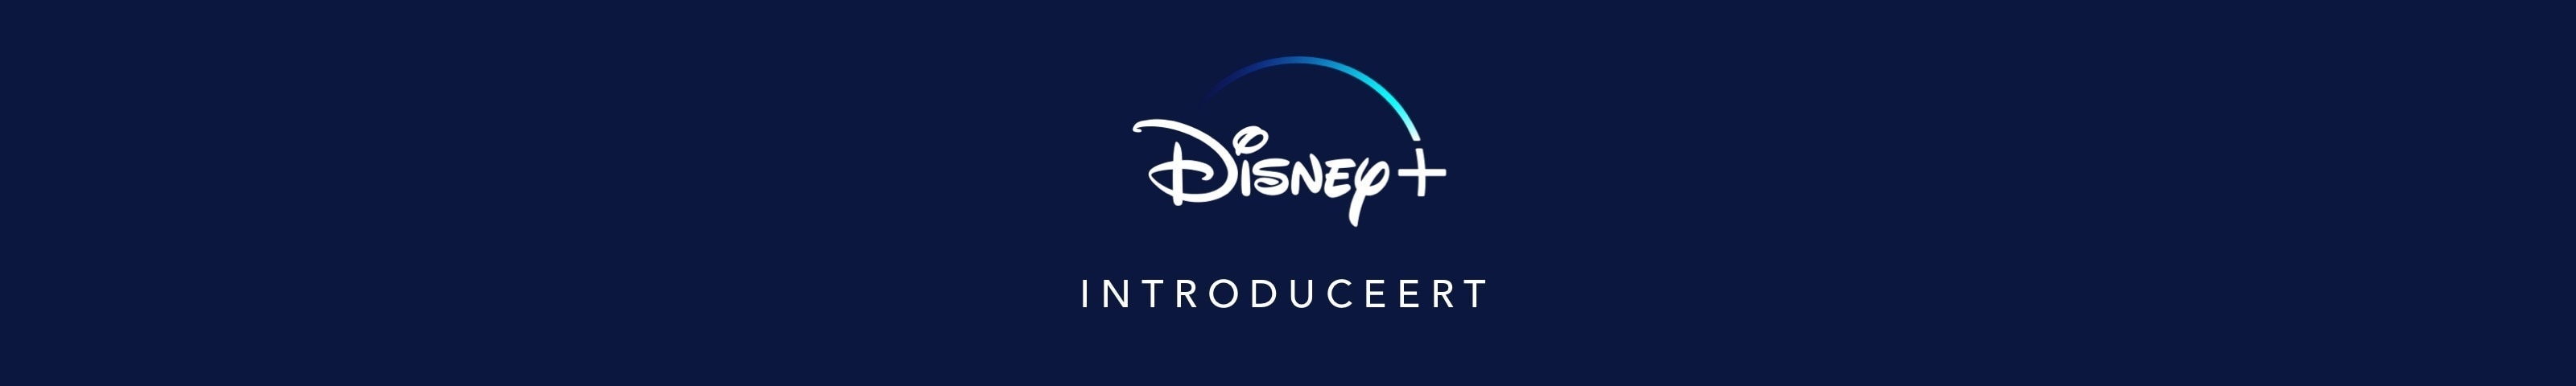 Disney+ introduceert